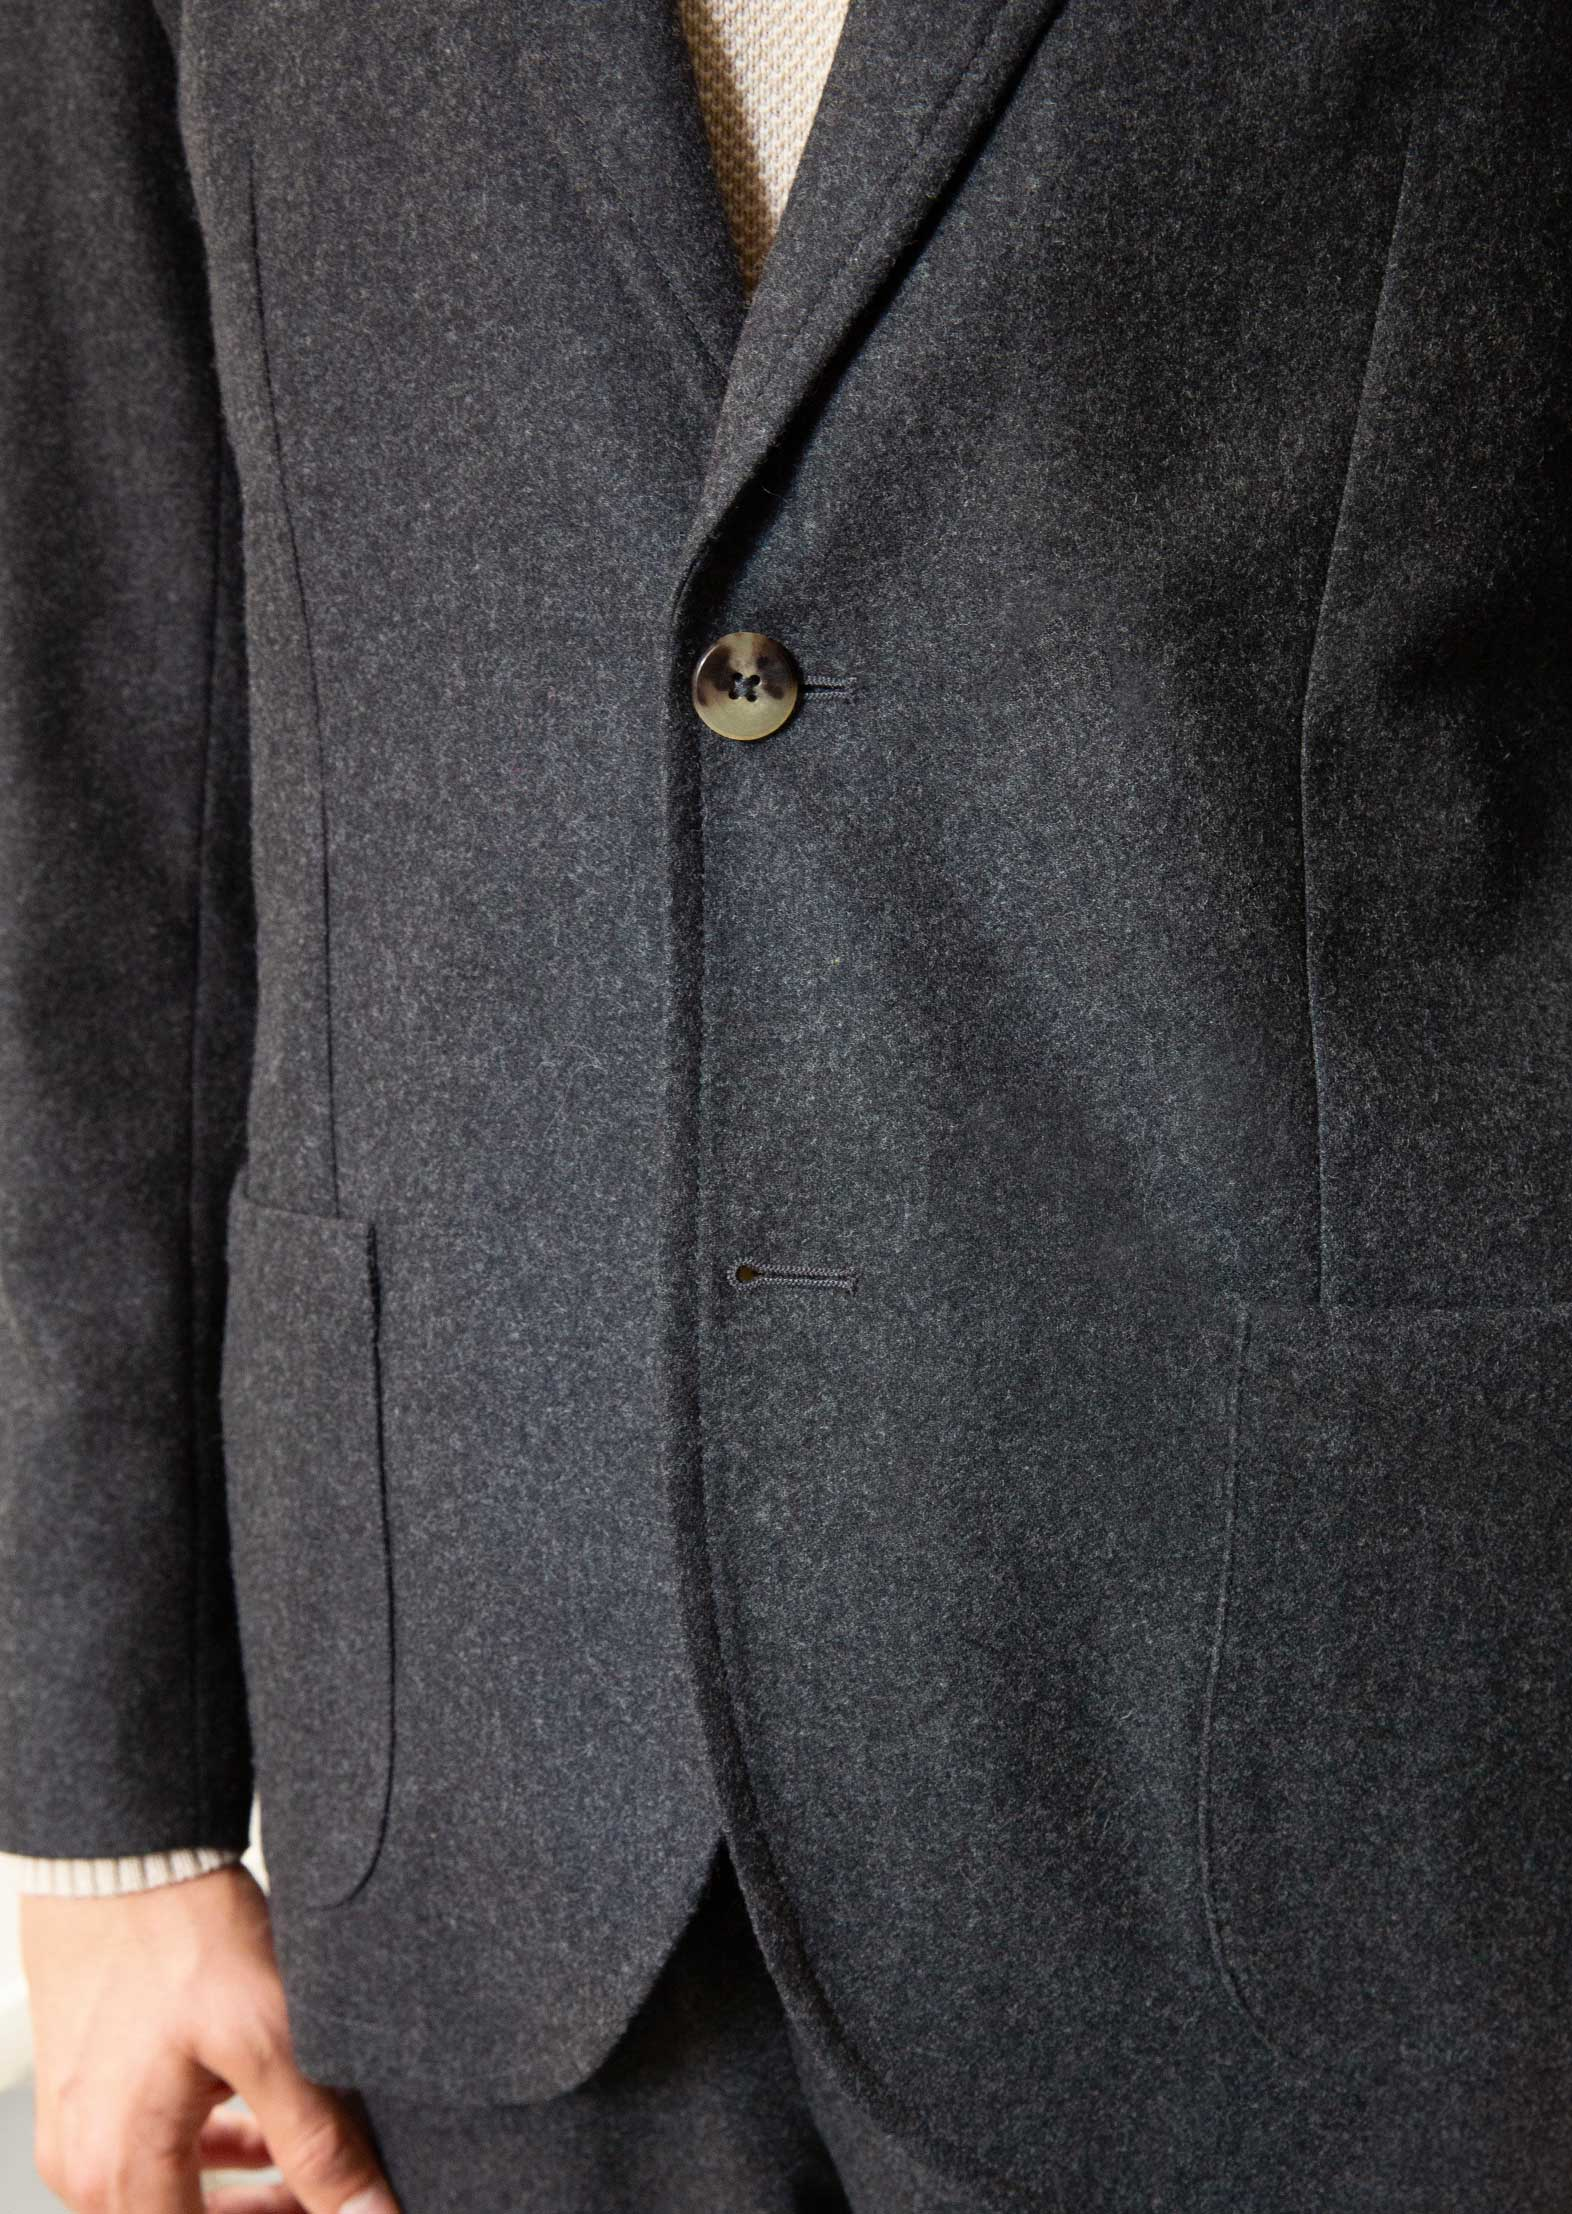 Sports jacket - Italian wool flannel - Charcoal - De Bonne Facture